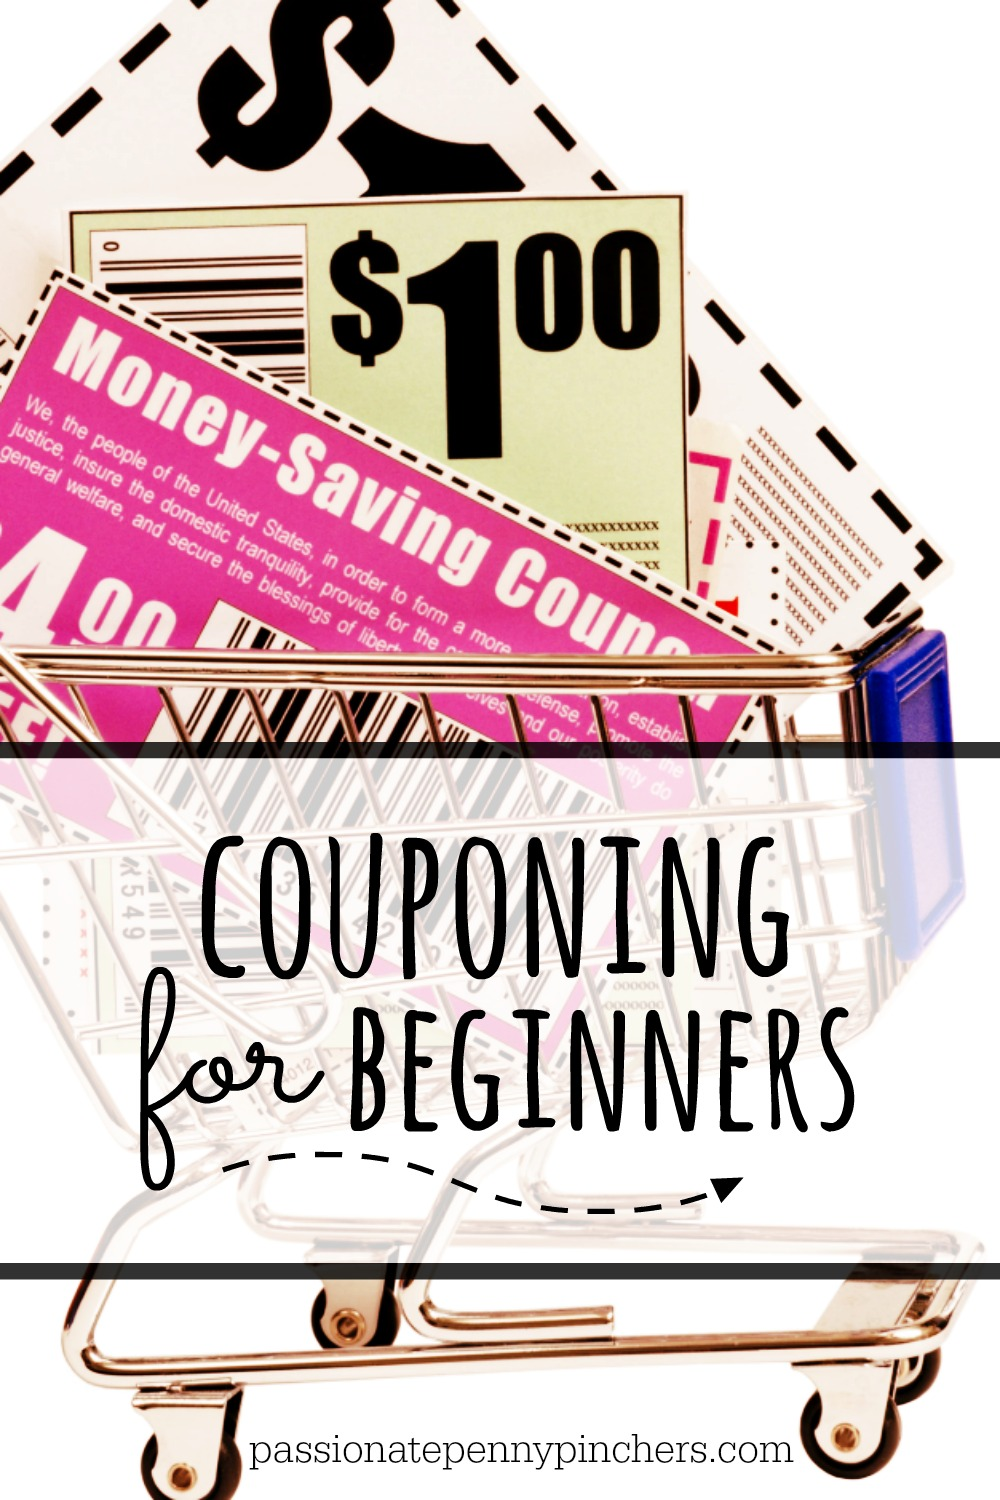 Penny pincher coupons